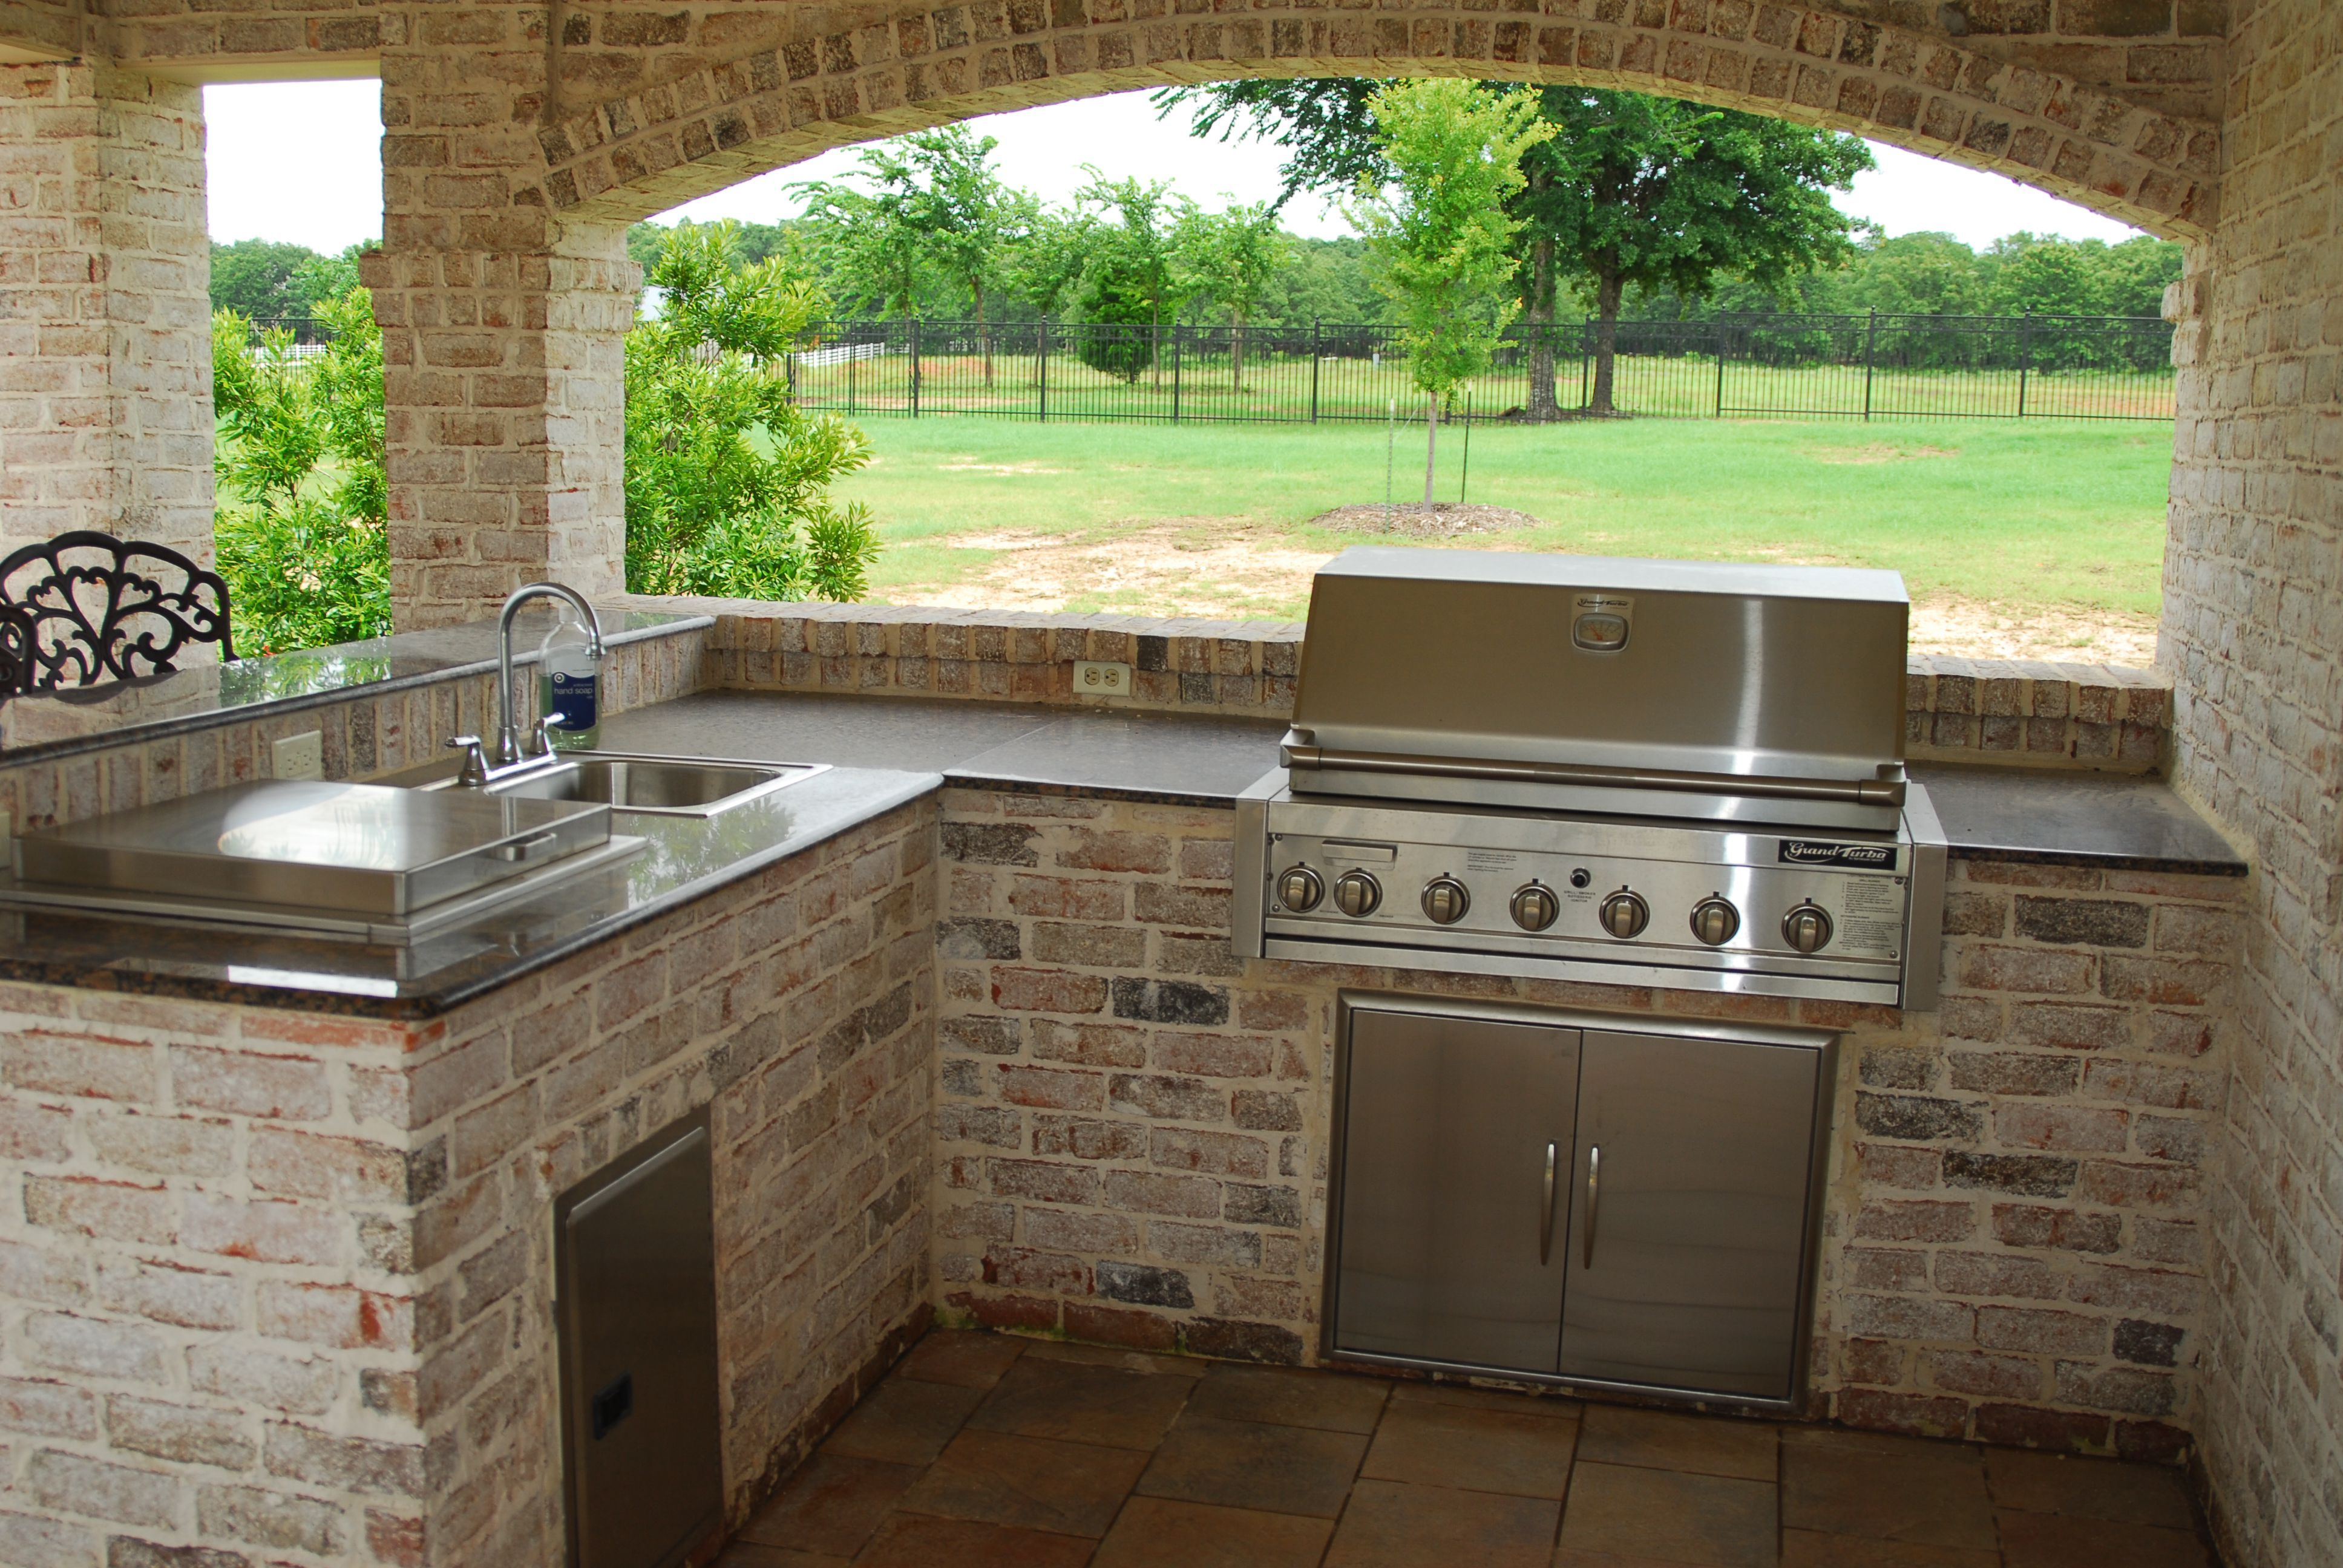 Superbe Kitchen:Kitchen Mesmerizing Small Outdoor Kitchen Decorating Ideas With  Creative Natural Brick Kitchen Island Outdoor Design Plus Stainless Steel  Propen Gas ...